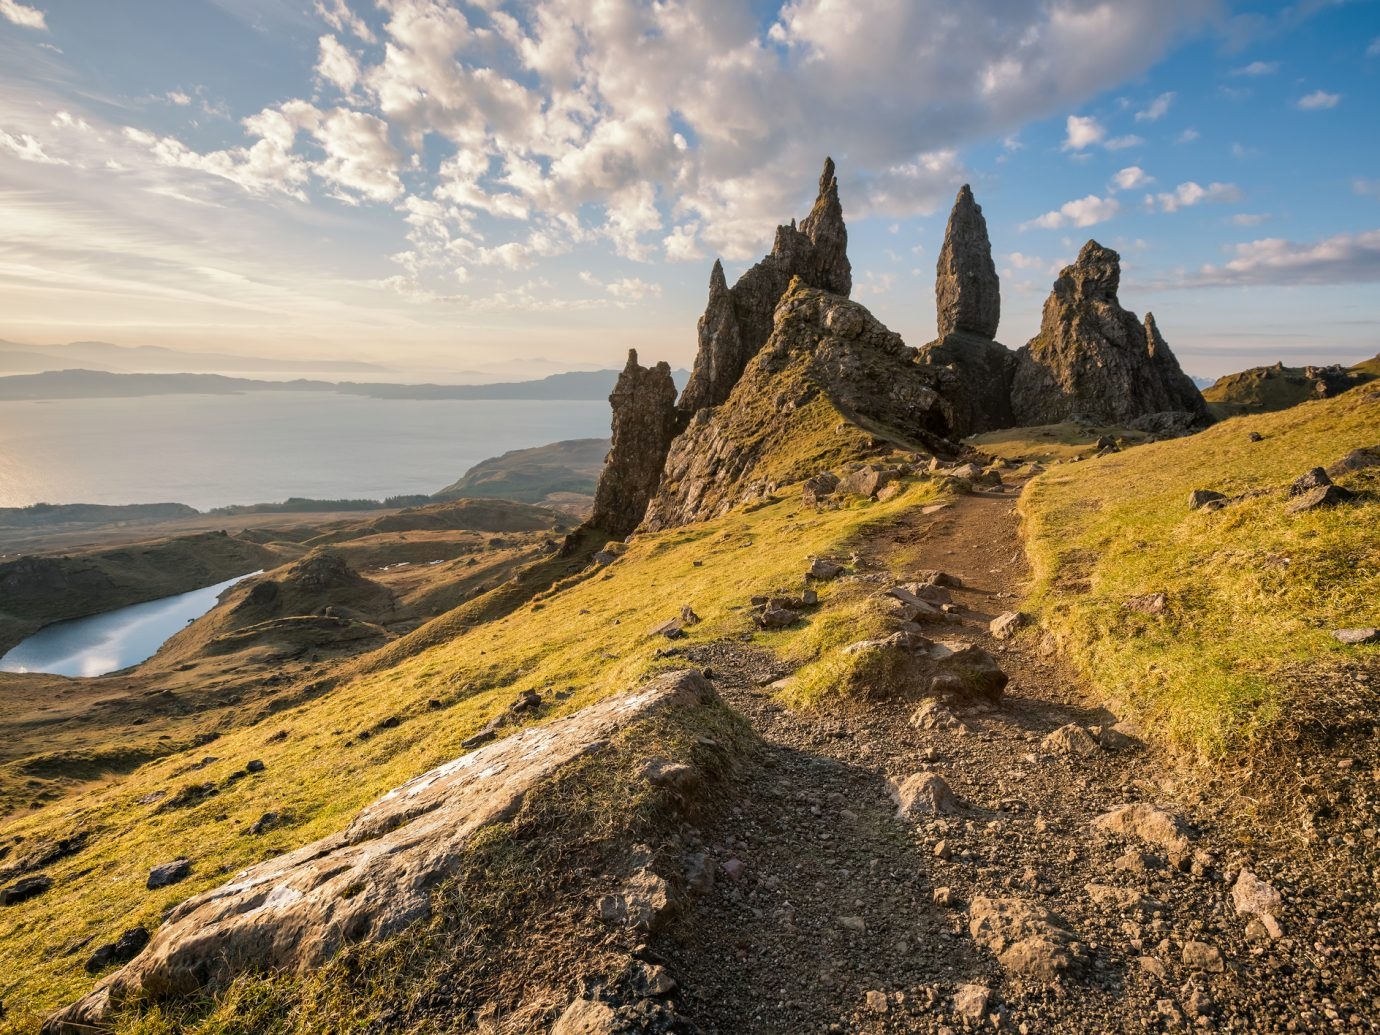 Sunrise at the Old Man of Storr, Isle of Skye, Scotland.